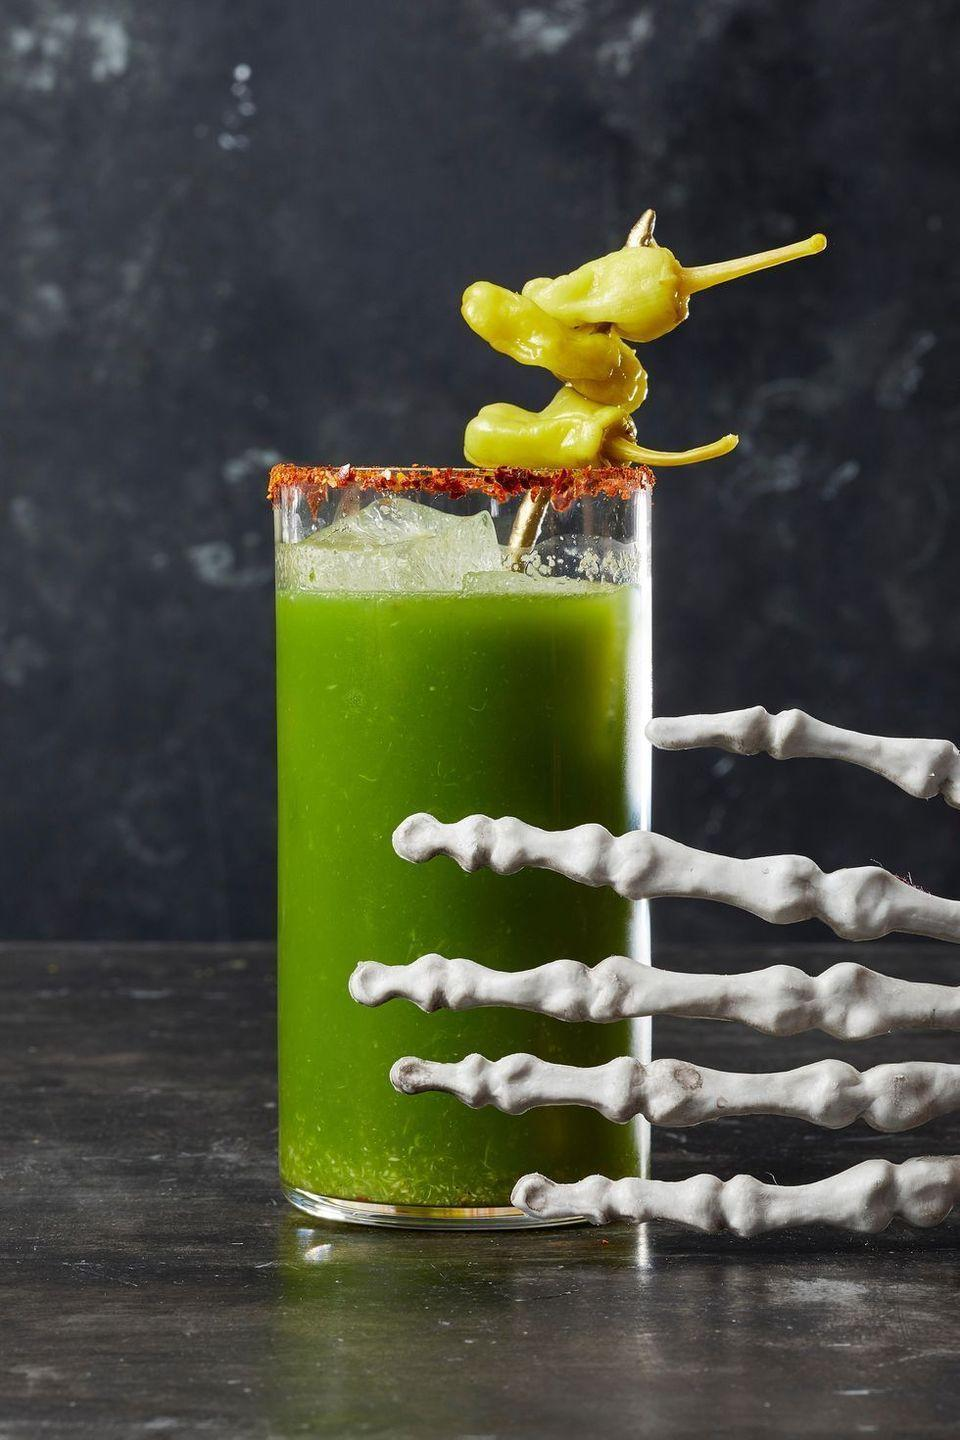 "<p>Blend up this eerie twist on a classic Bloody Mary to serve for your Halloween party.</p><p><em><a href=""https://www.goodhousekeeping.com/food-recipes/a28553276/swamp-thing-recipe/"" rel=""nofollow noopener"" target=""_blank"" data-ylk=""slk:Get the recipe for Swamp Thing »"" class=""link rapid-noclick-resp"">Get the recipe for Swamp Thing »</a></em> </p>"